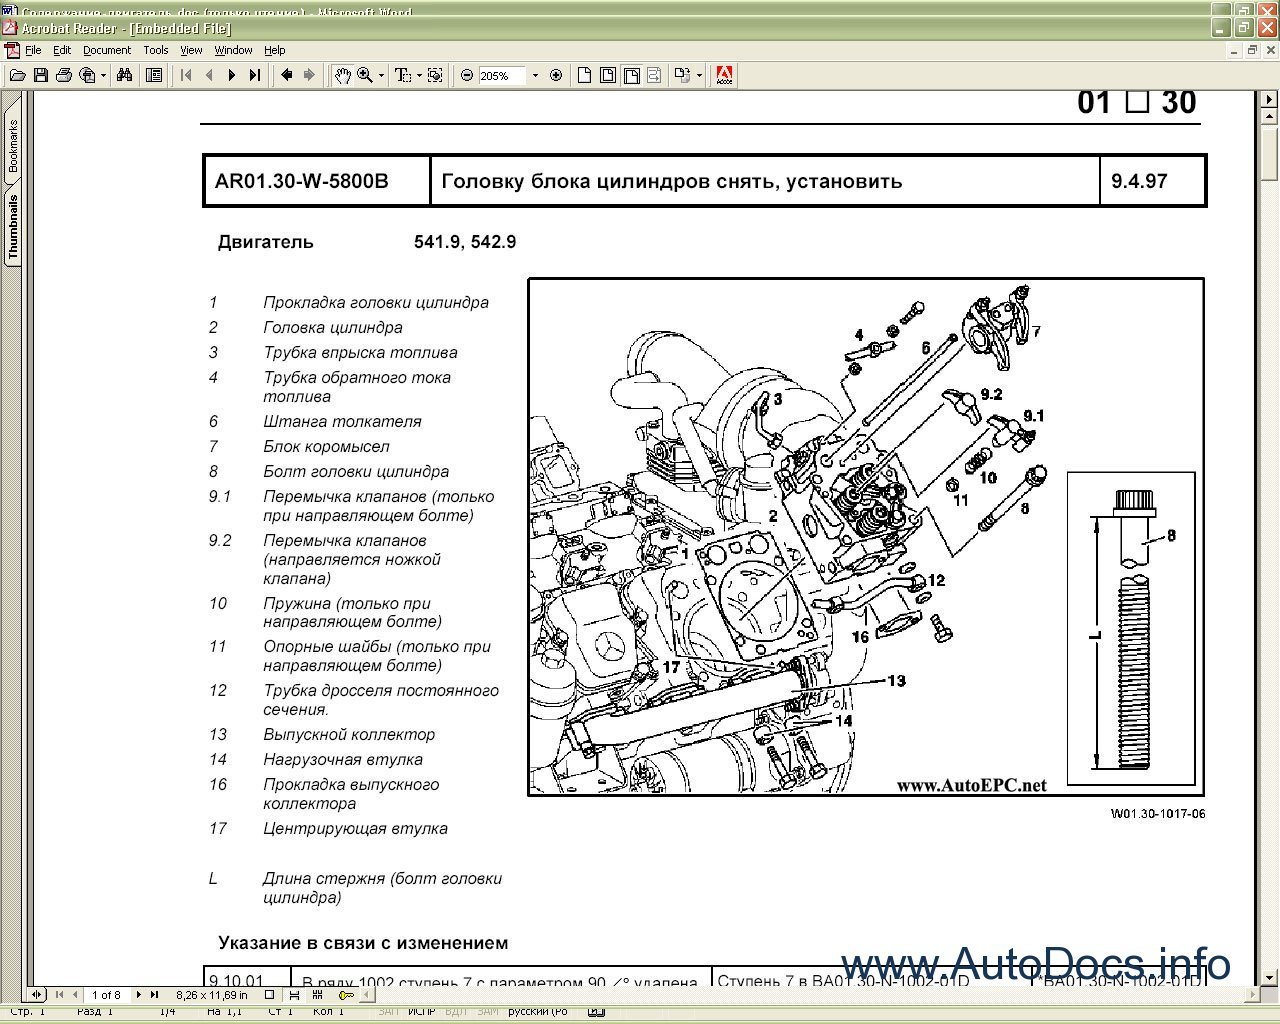 Mercedes Benz Repair Diagrams Good Owner Guide Website Wiring Diagram Additionally On 220 440 Actros Service Documentation Manual 1974